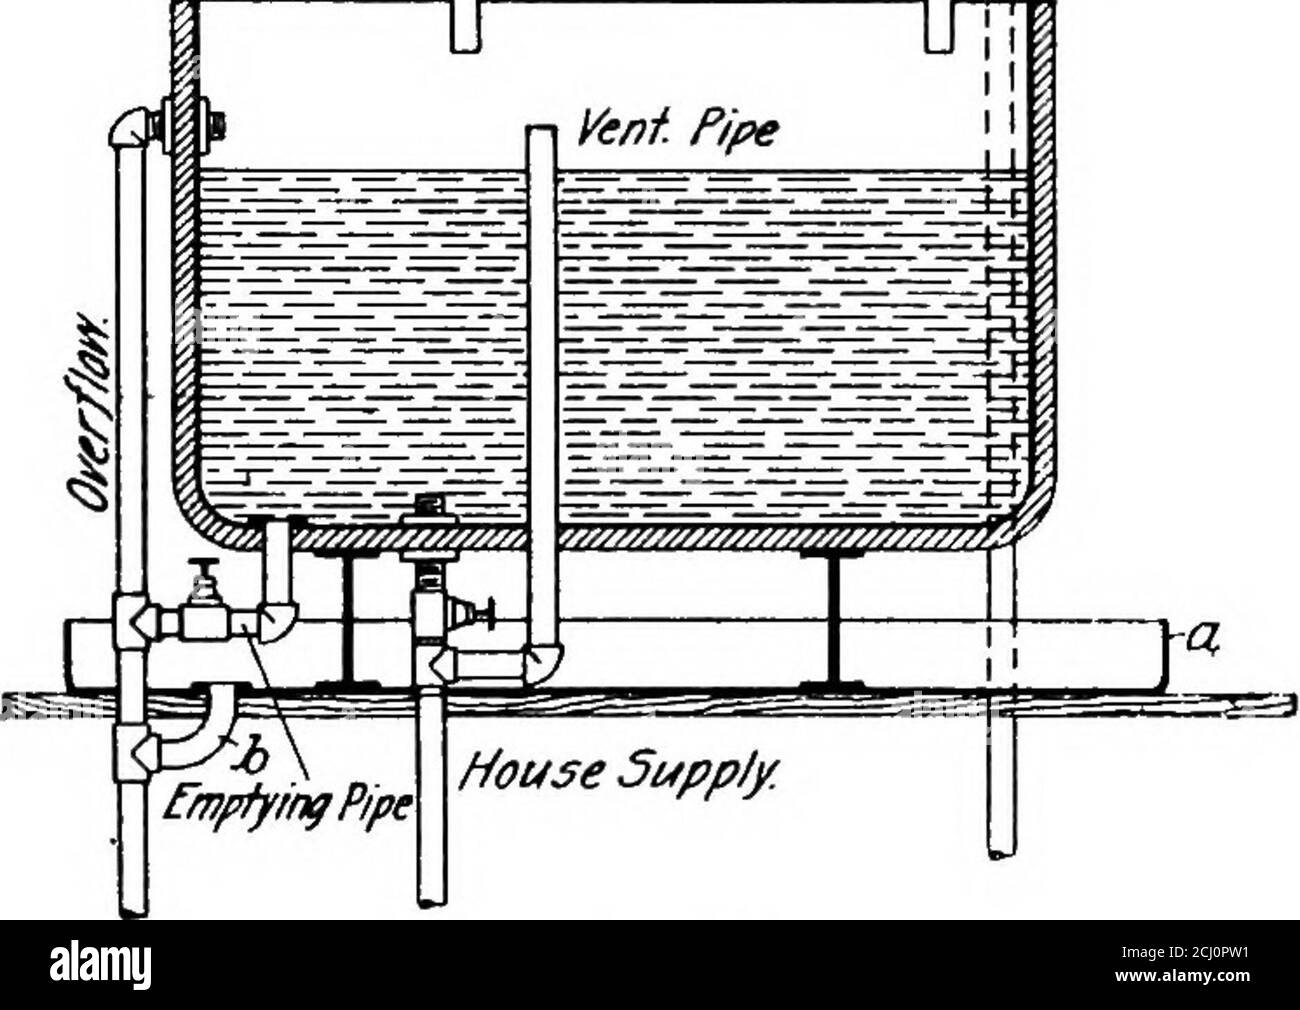 https www alamy com principles and practice of plumbing controlled automatically when it is thepump pipe should enter the tank through the bottom and becontrolled by a bal anced float valve wy opfa drip pan a un i lj lllider the tank andextending a fewinches on all sidesof it catches thewater of condensa tion and dischargesit through thewaste pipe b intothe overflow pipewhen a tank issupplied with wa ter by a pump thatis not automatic in operation a tell tale pipe should be runfrom a point in the tank about two inches below the level ofthe overflow pipe to the engineers sink water flowingthr image372499485 html